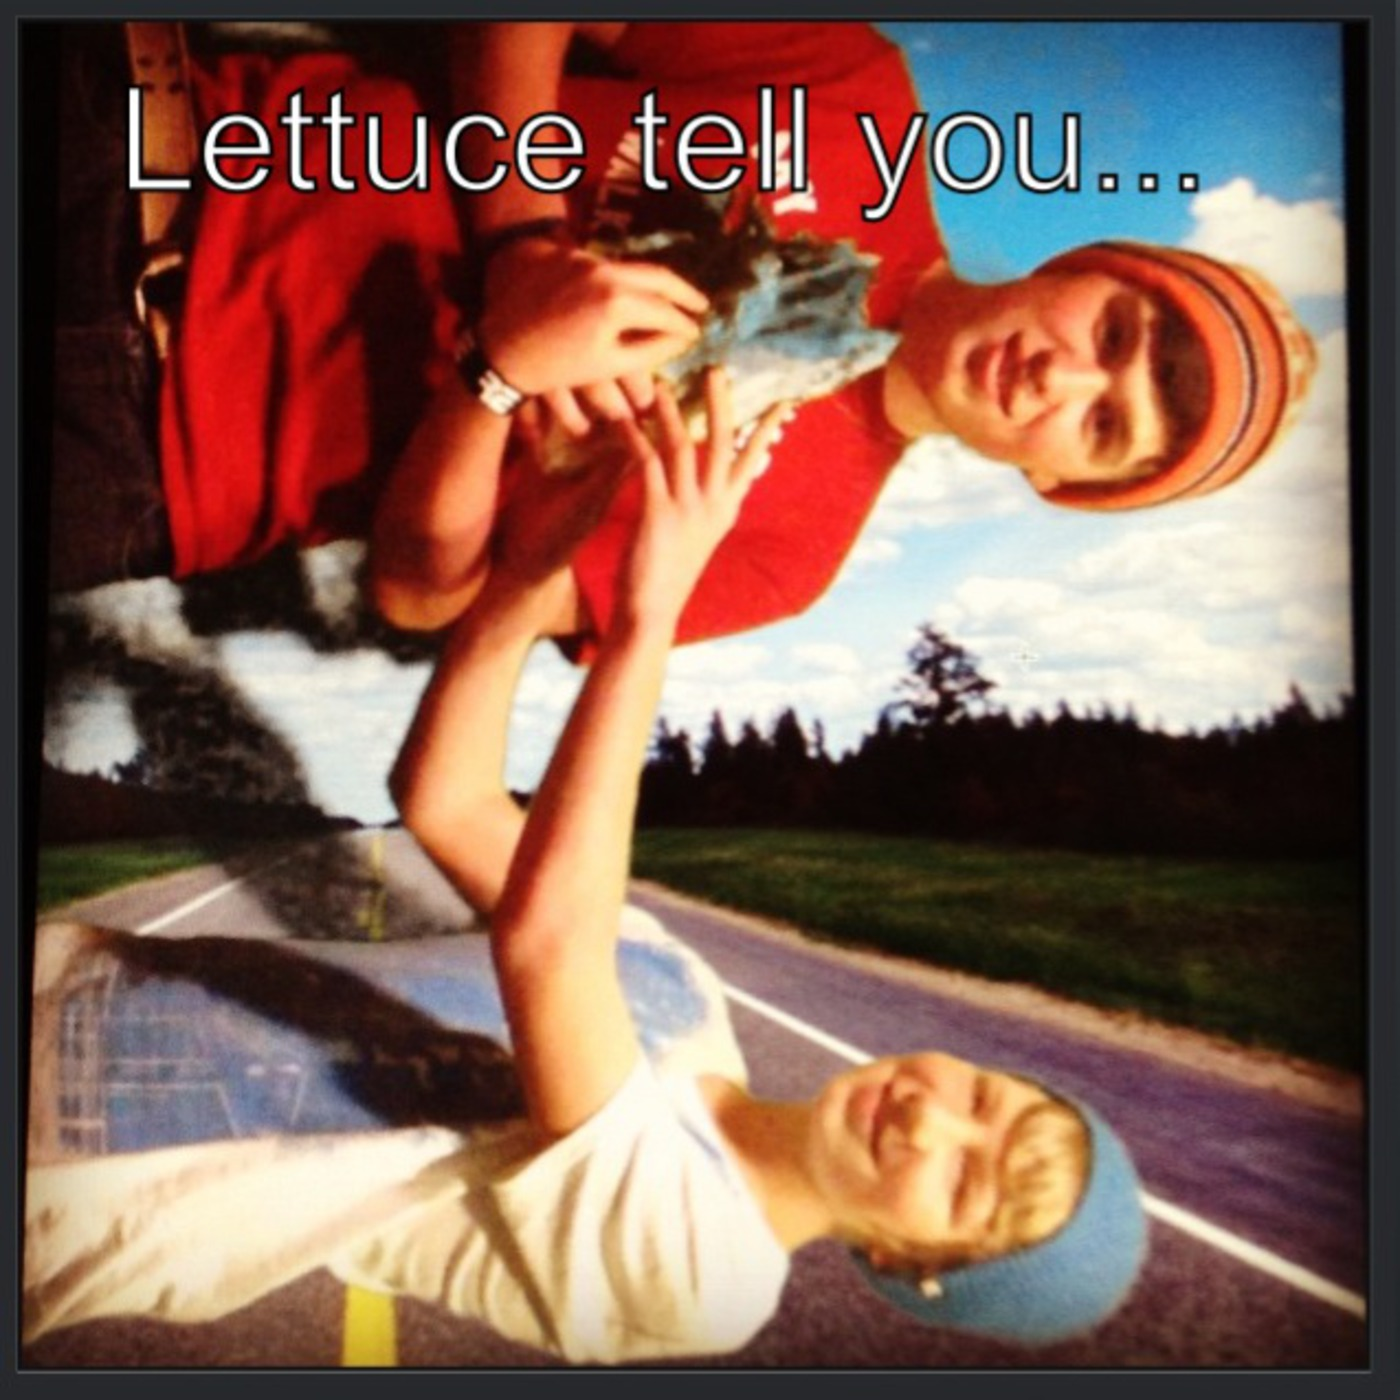 Lettuce tell you...